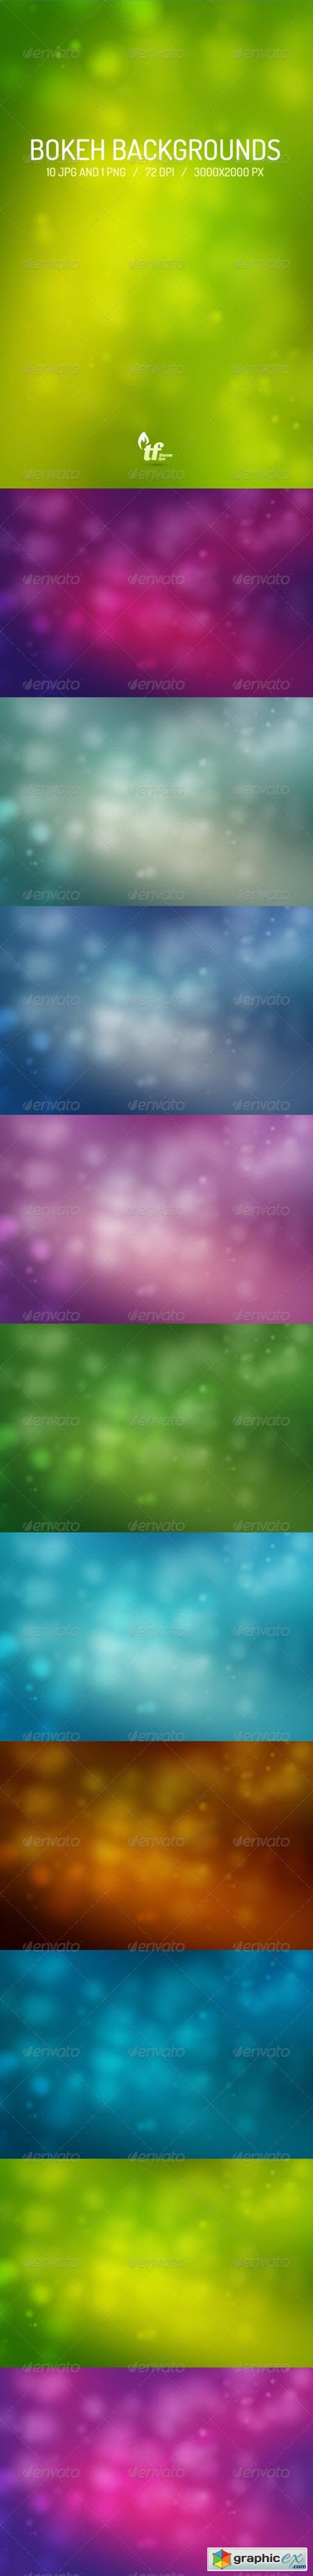 Bokeh Backgrounds 6617882